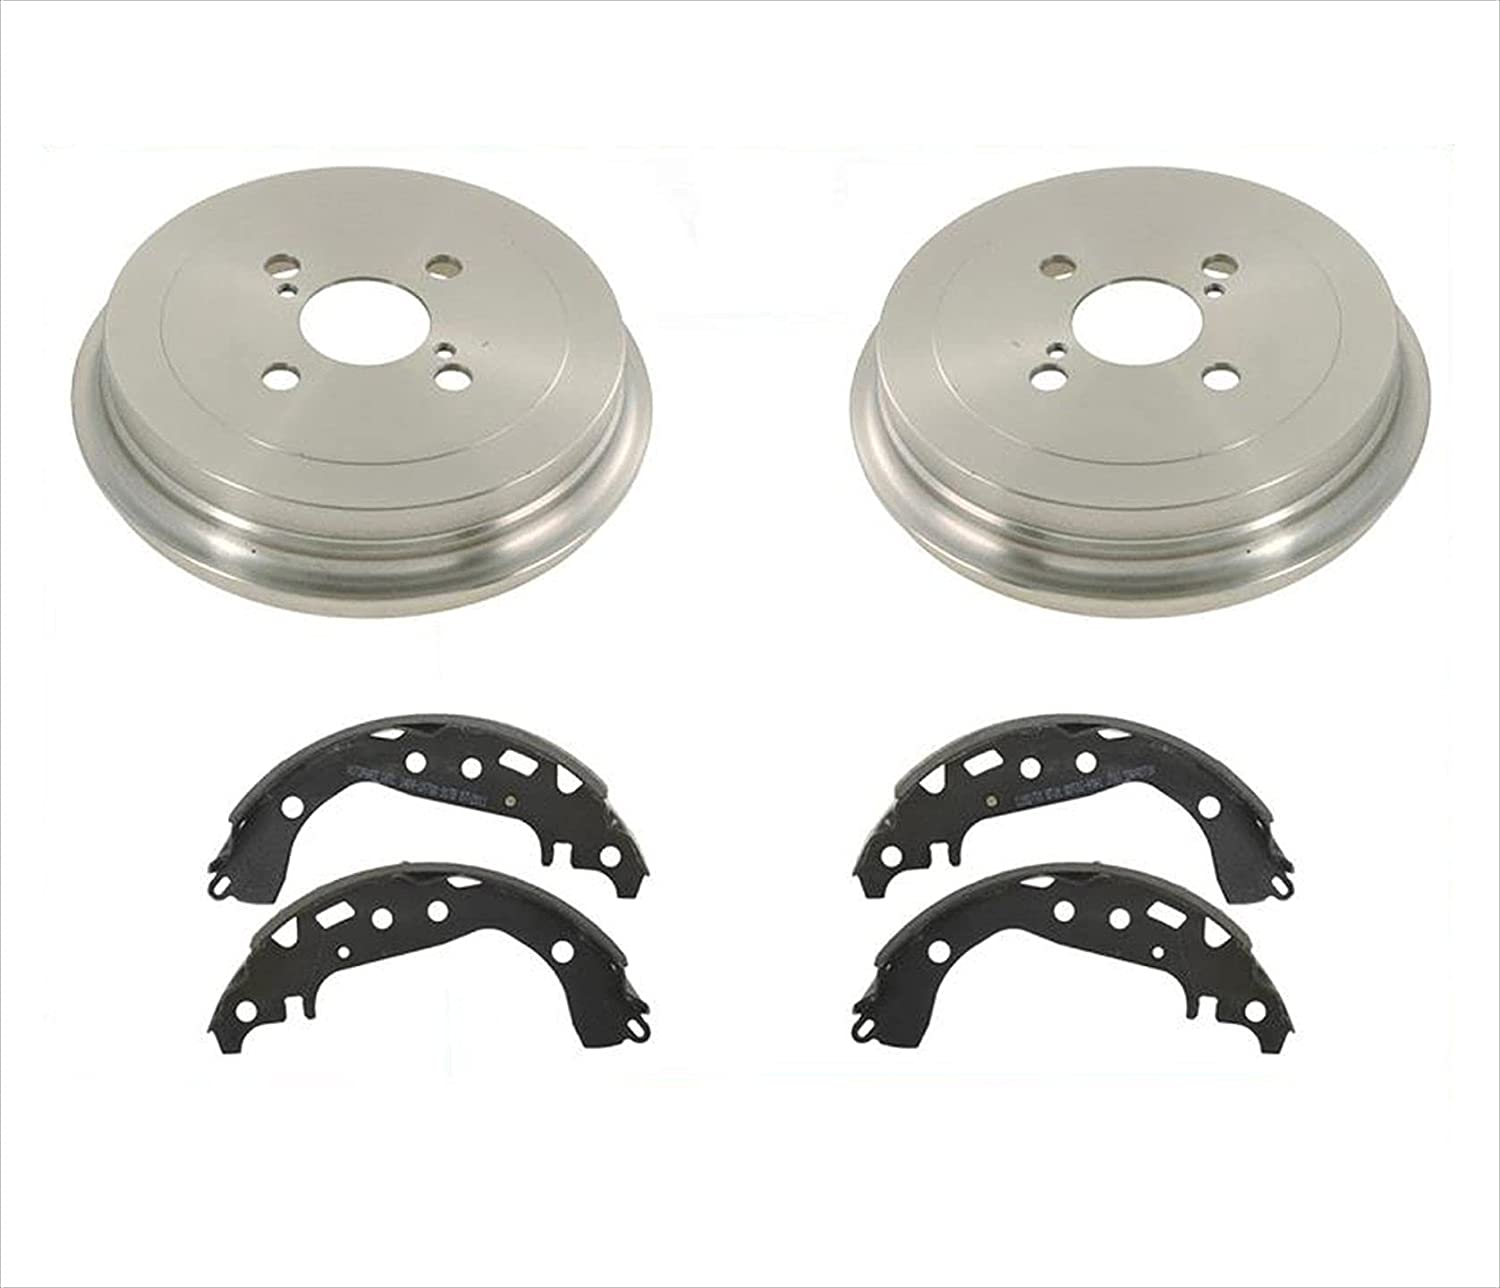 Rear Drums and Brake Shoes 3pc 2006-2013 Yaris Kit for Ranking TOP17 Toyota Nashville-Davidson Mall